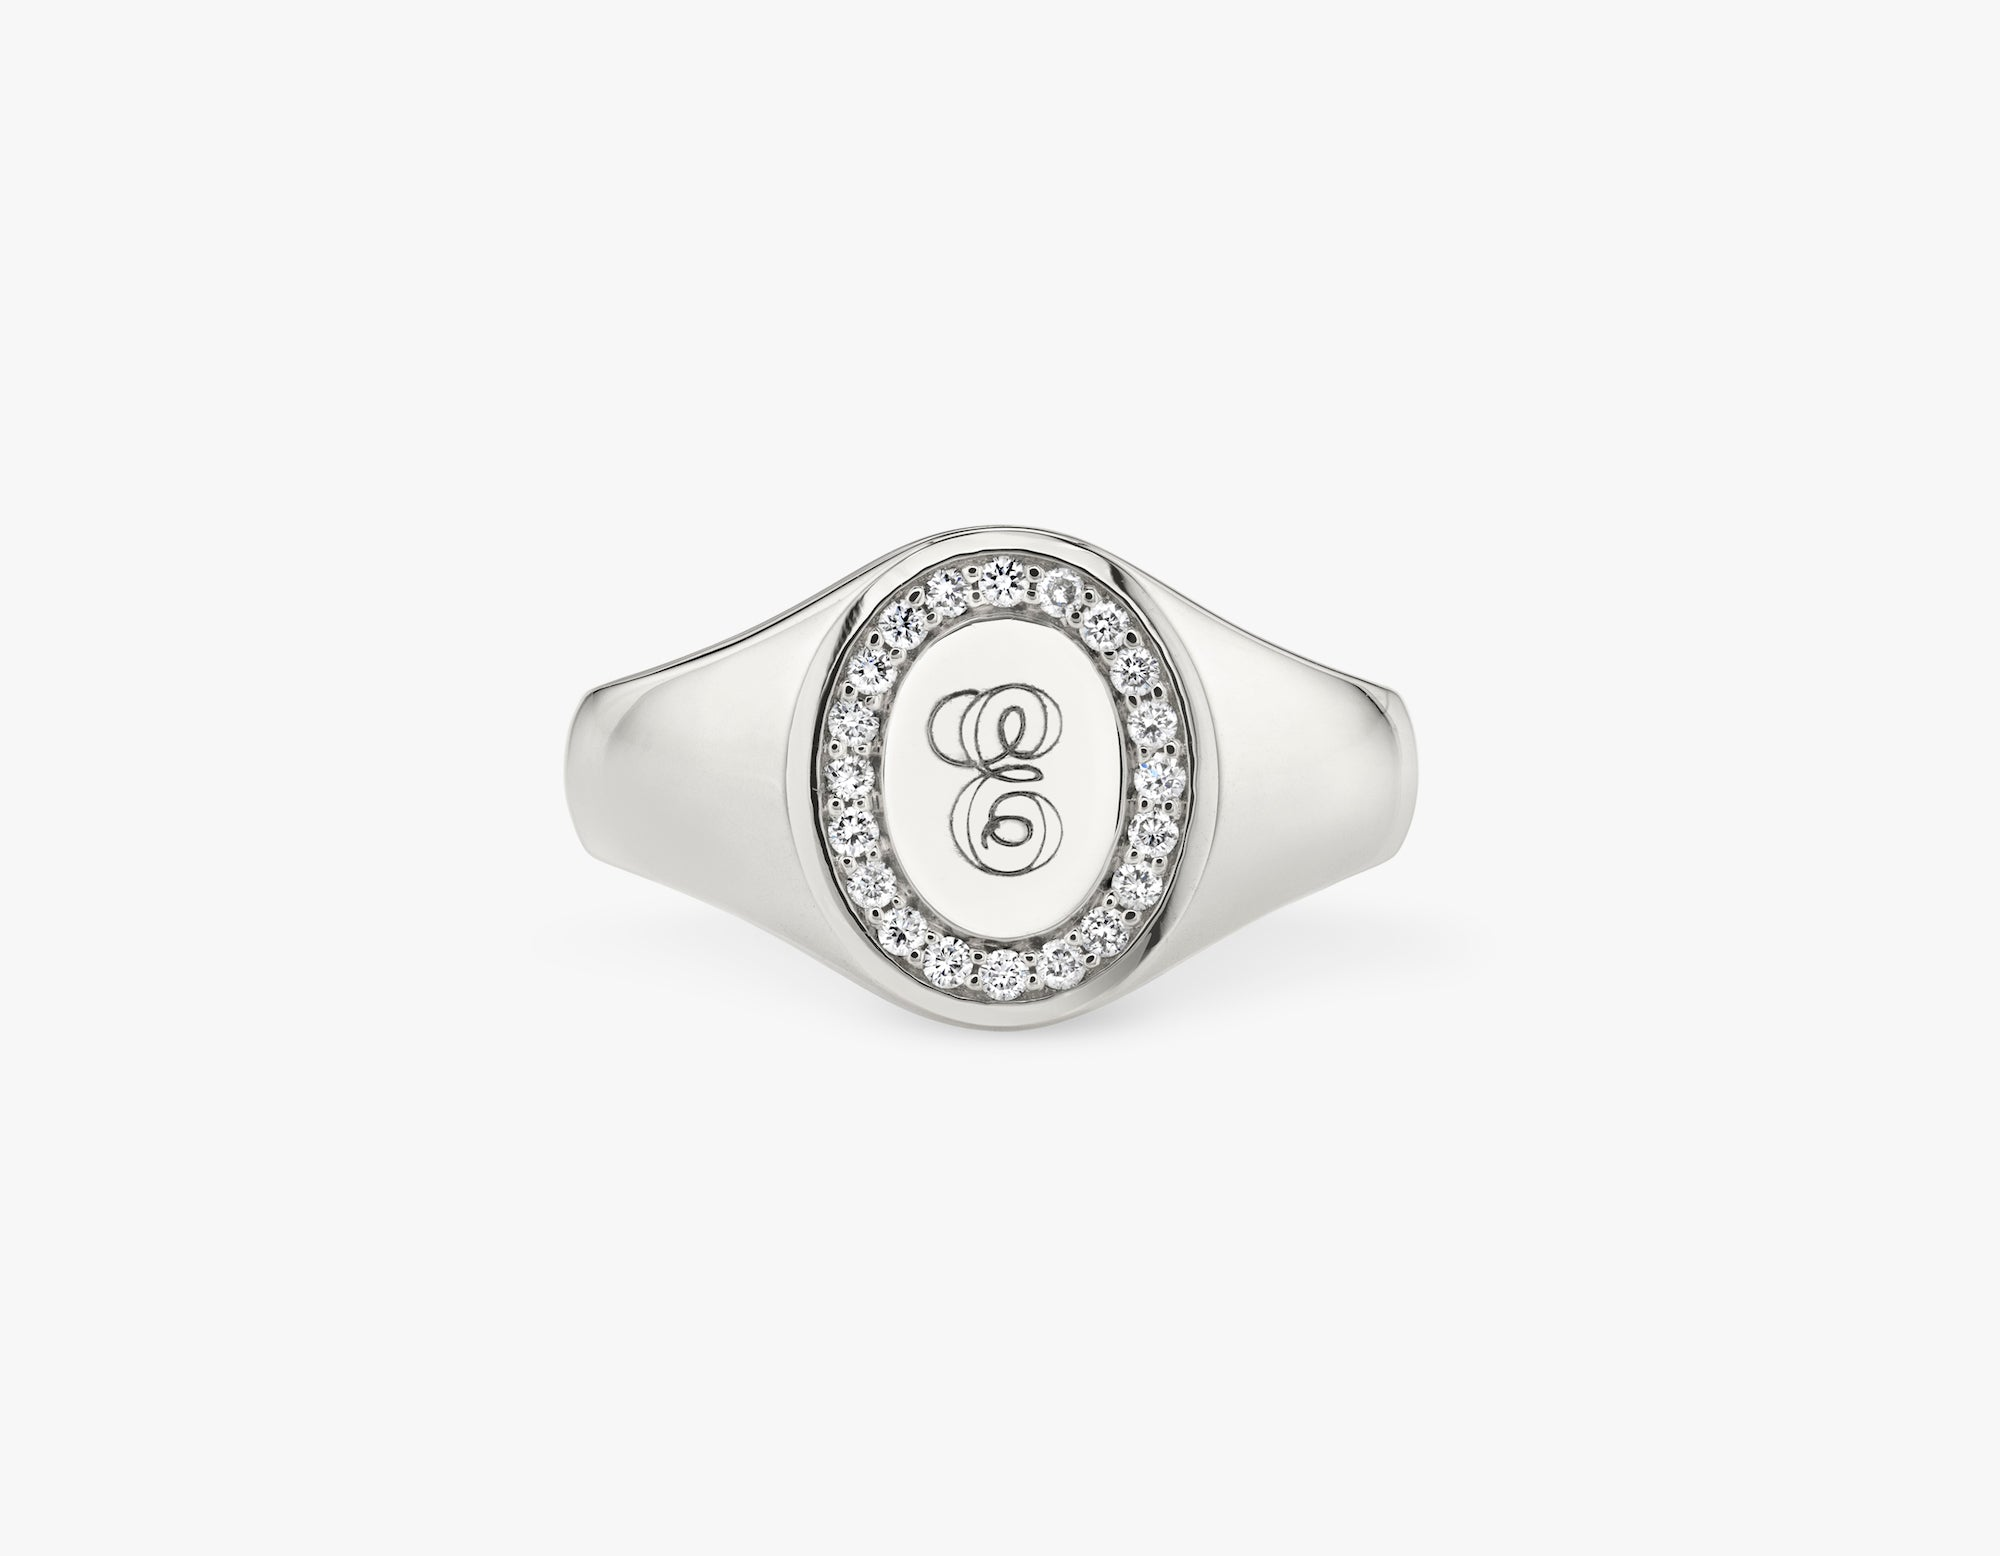 Vrai 14k solid gold classic customizable engraved Signet Ring, 14K White Gold